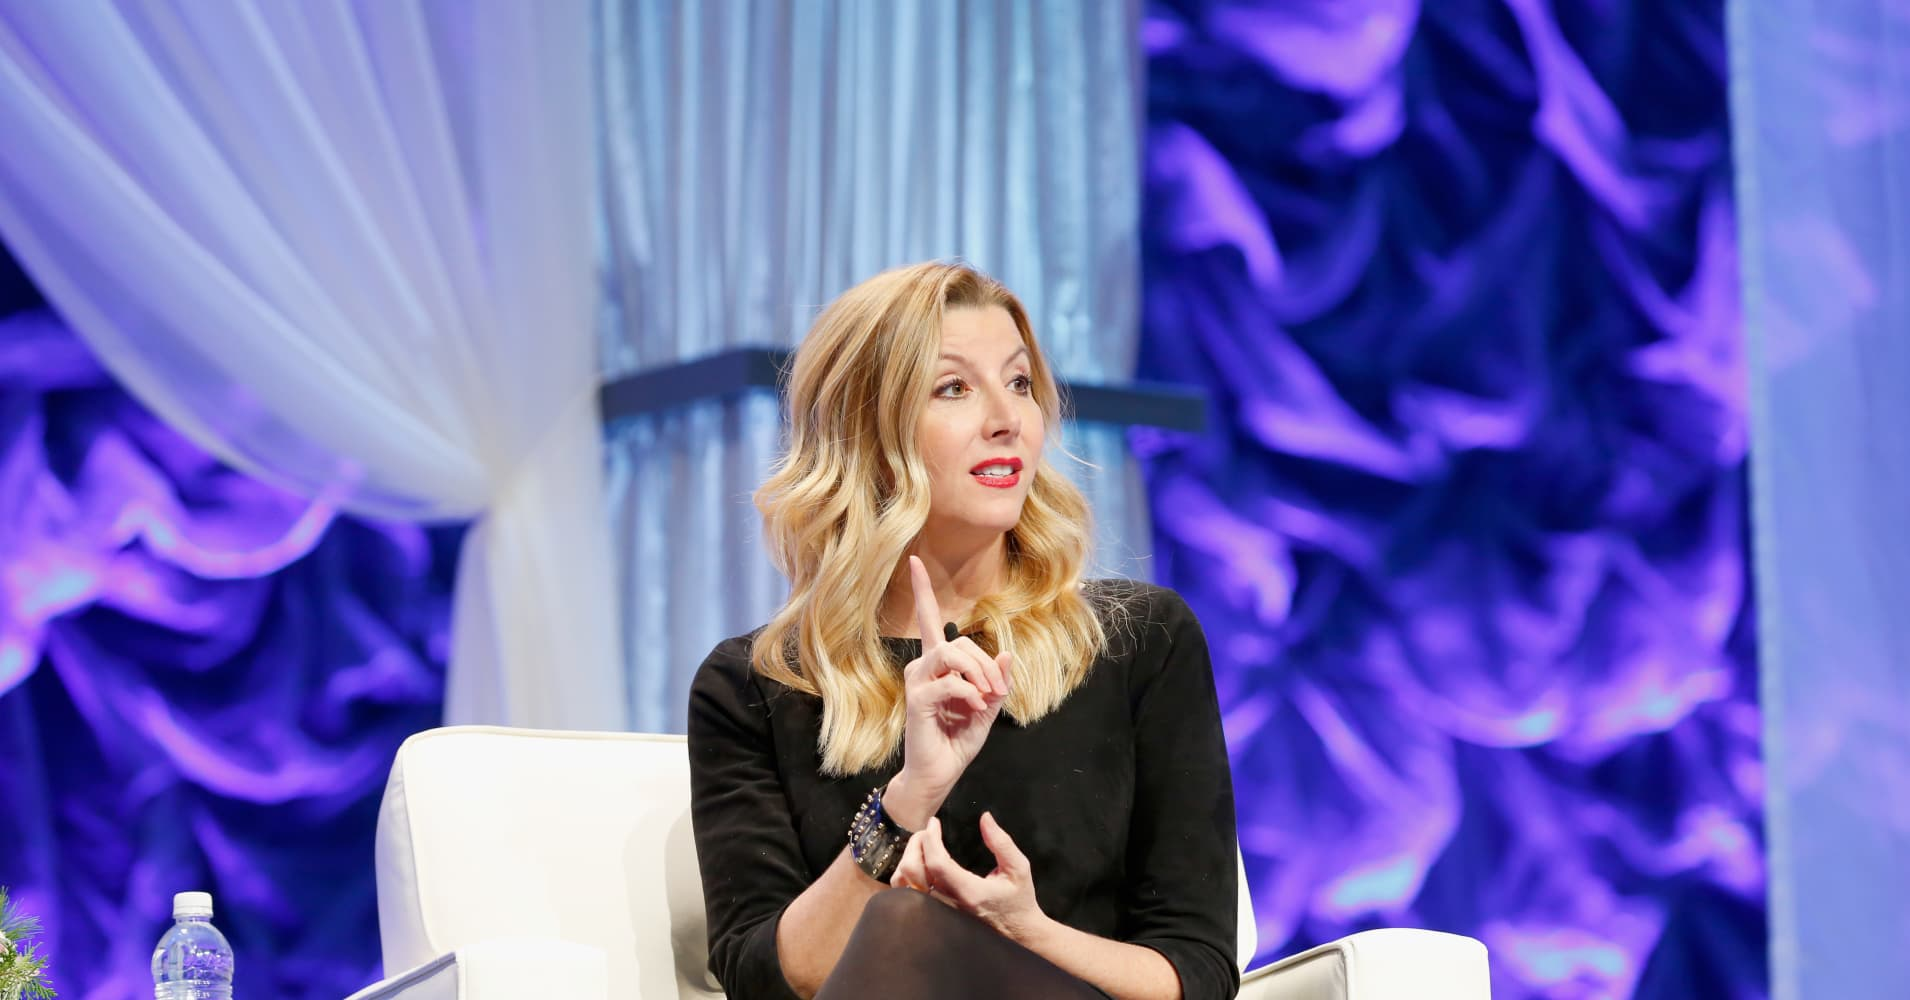 Spanx founder Sara Blakely speaks onstage during the Massachusetts Conference for Women at Boston Convention & Exhibition Center on December 8, 2016 in Boston, Massachusetts.